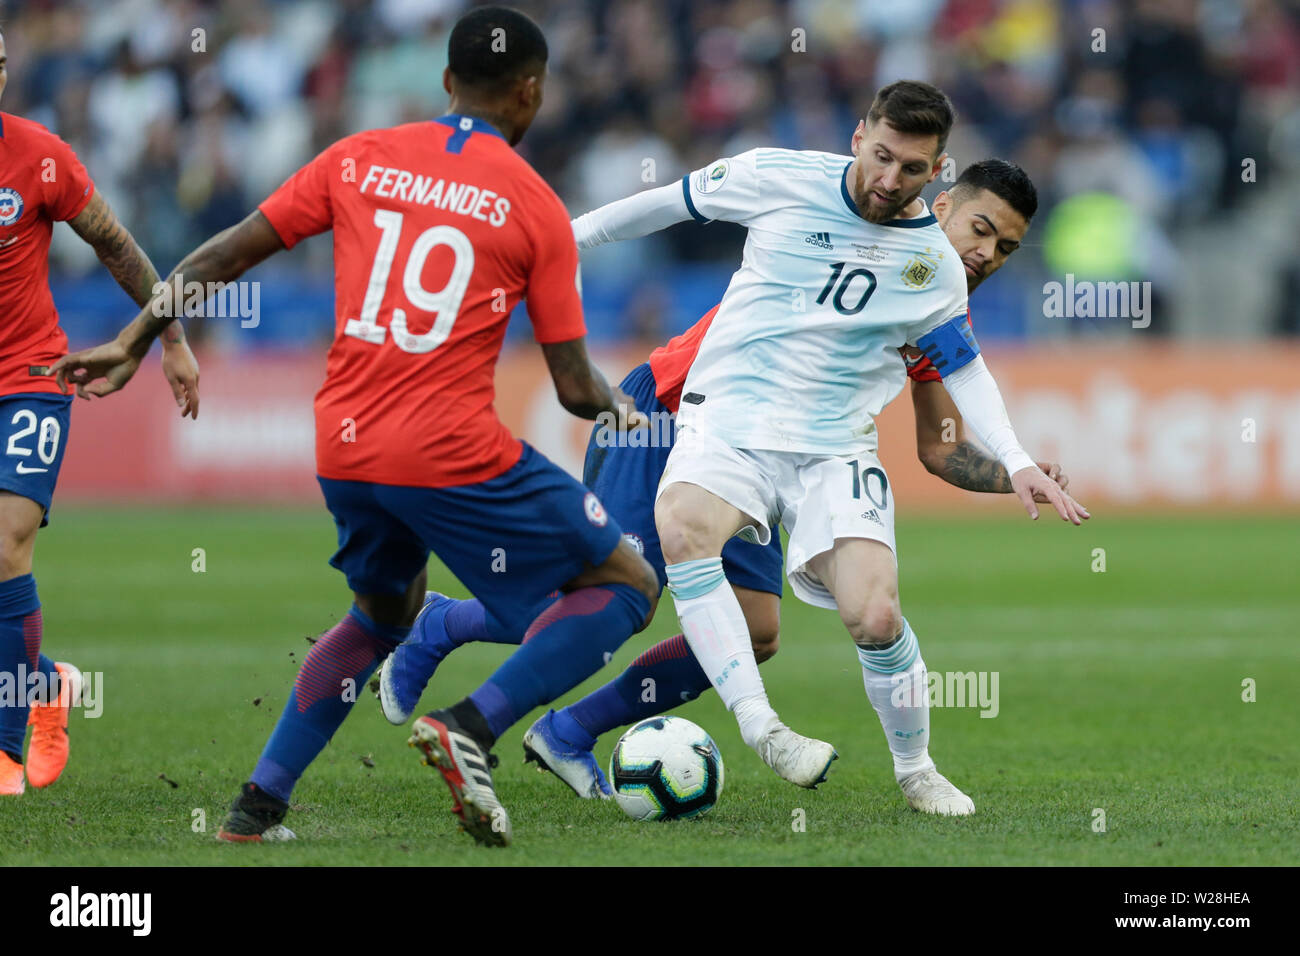 Sao Paulo, Brazil. 6th July, 2019. Argentina's Lionel Messi (C) competes during the 3rd place match of Copa America 2019 between Argentina and Chile in Sao Paulo, Brazil, July 6, 2019. Credit: Francisco Canedo/Xinhua/Alamy Live News - Stock Image